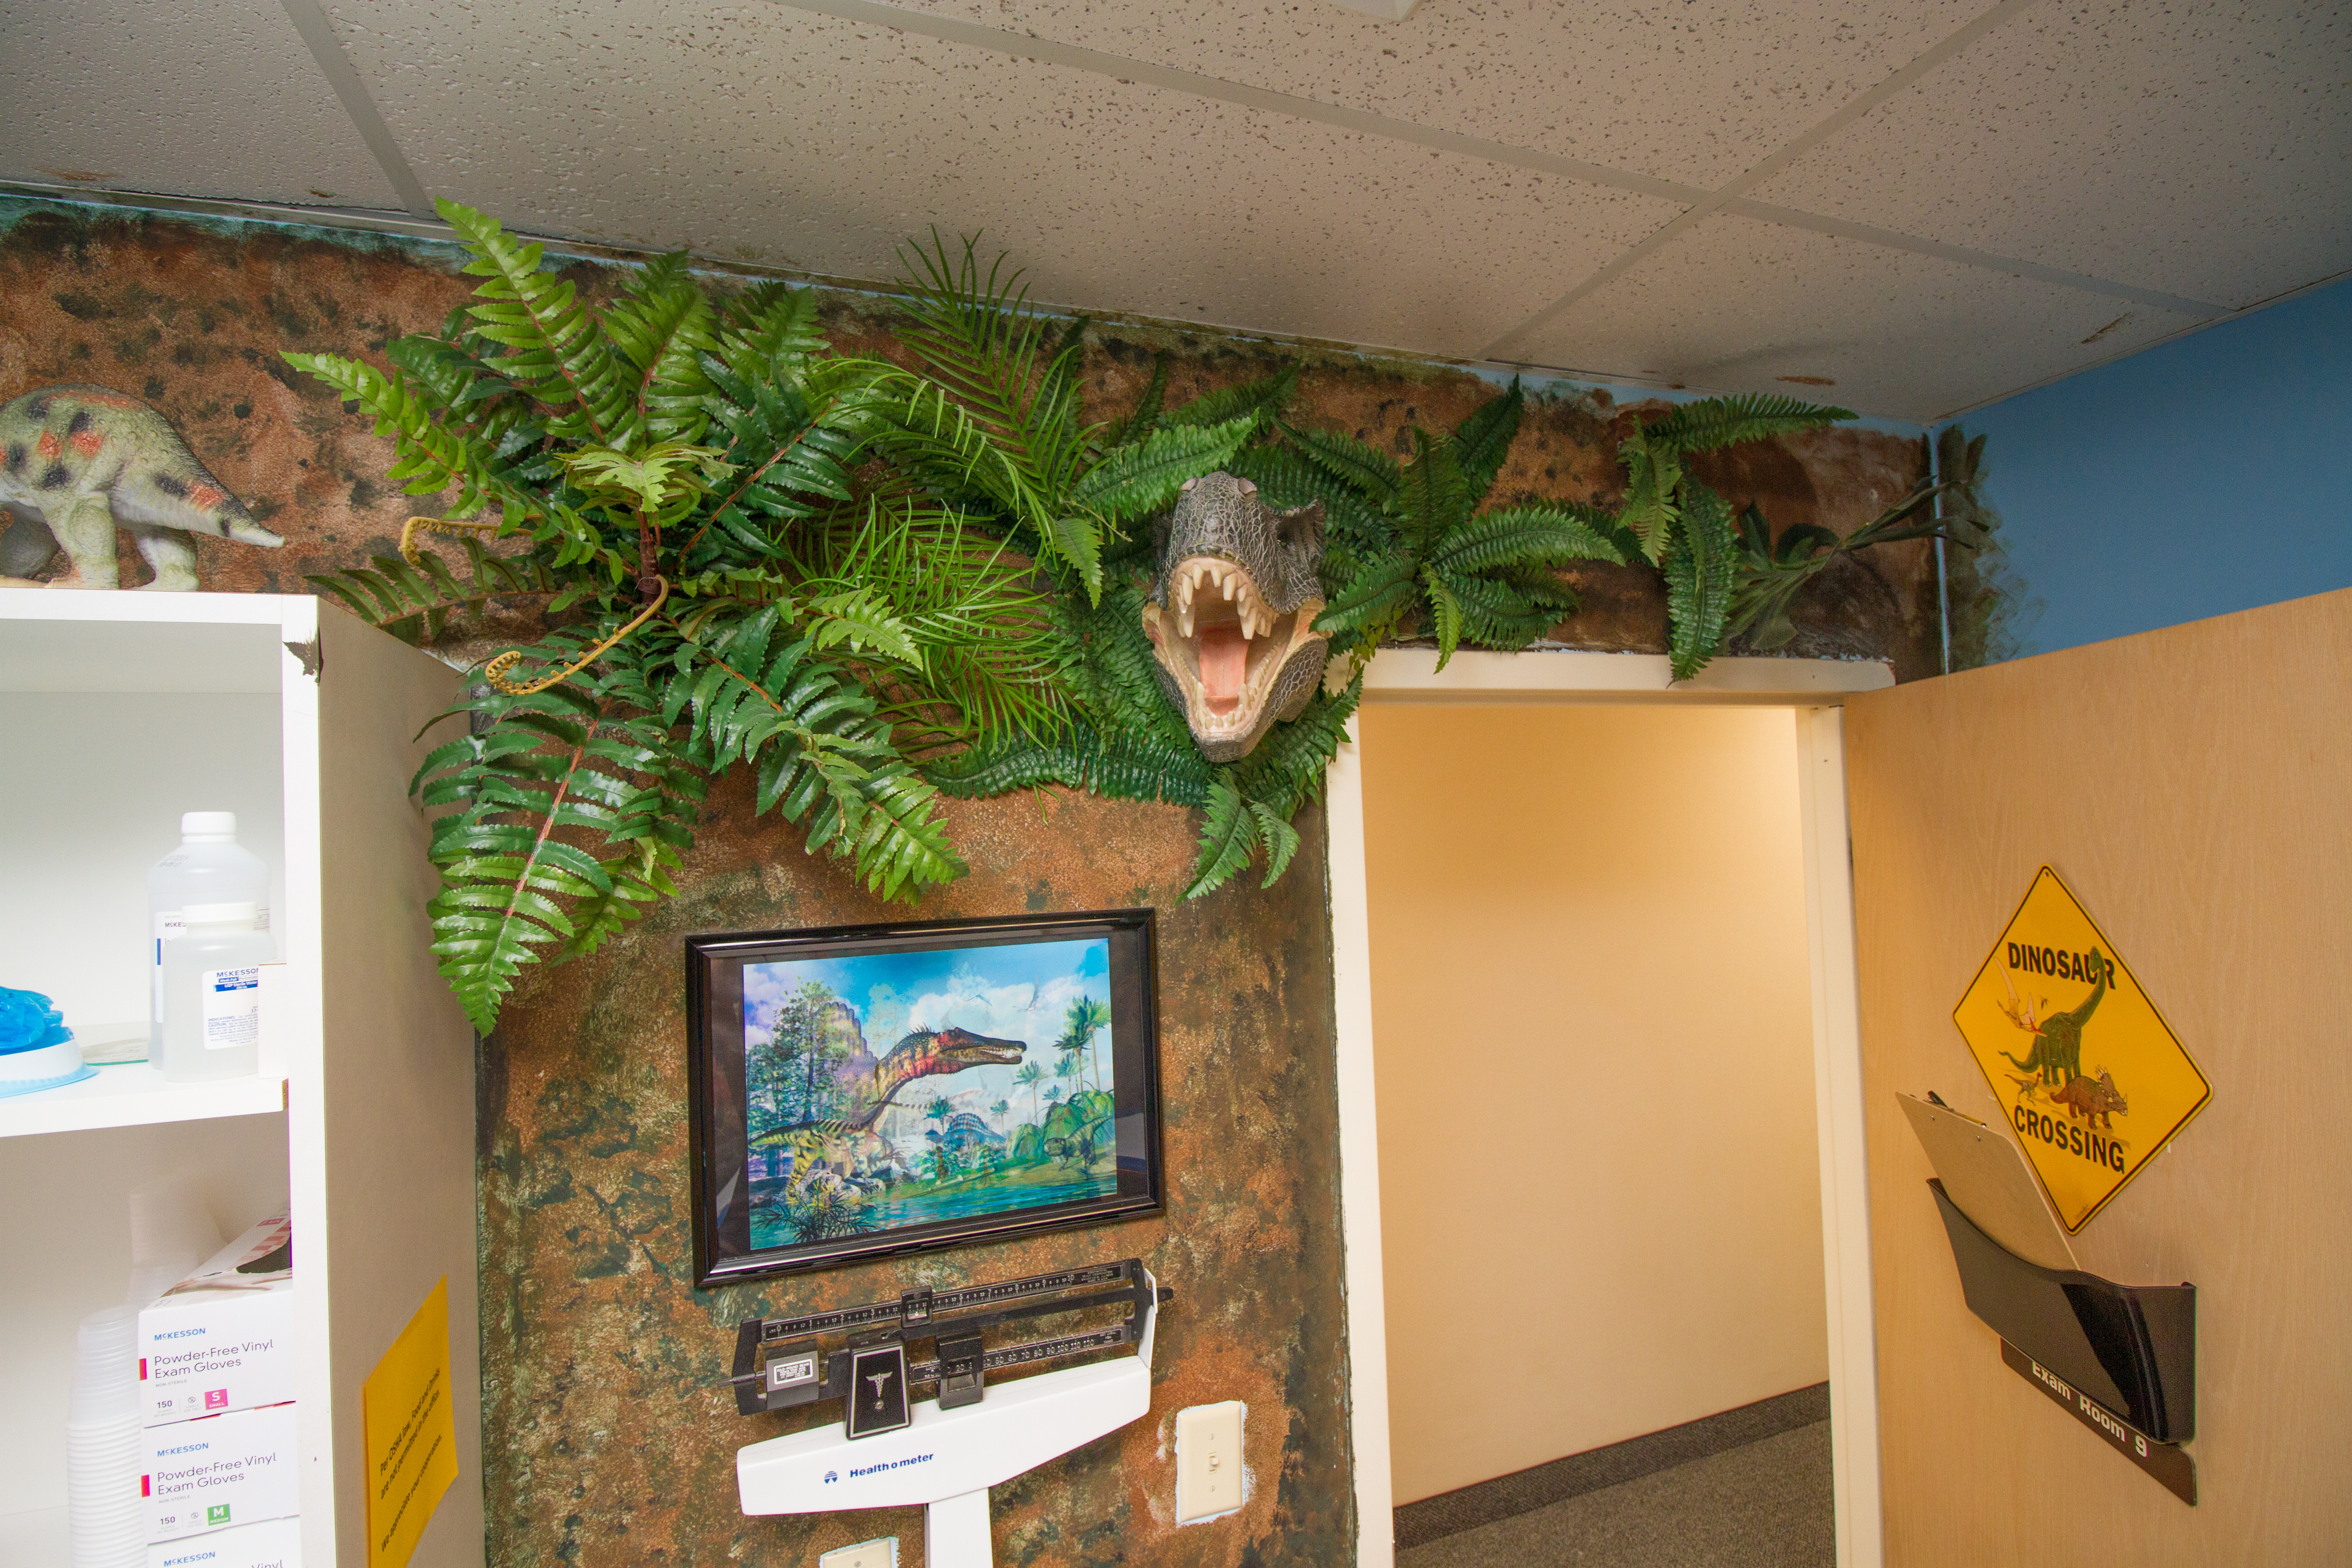 The Dinosaur Room